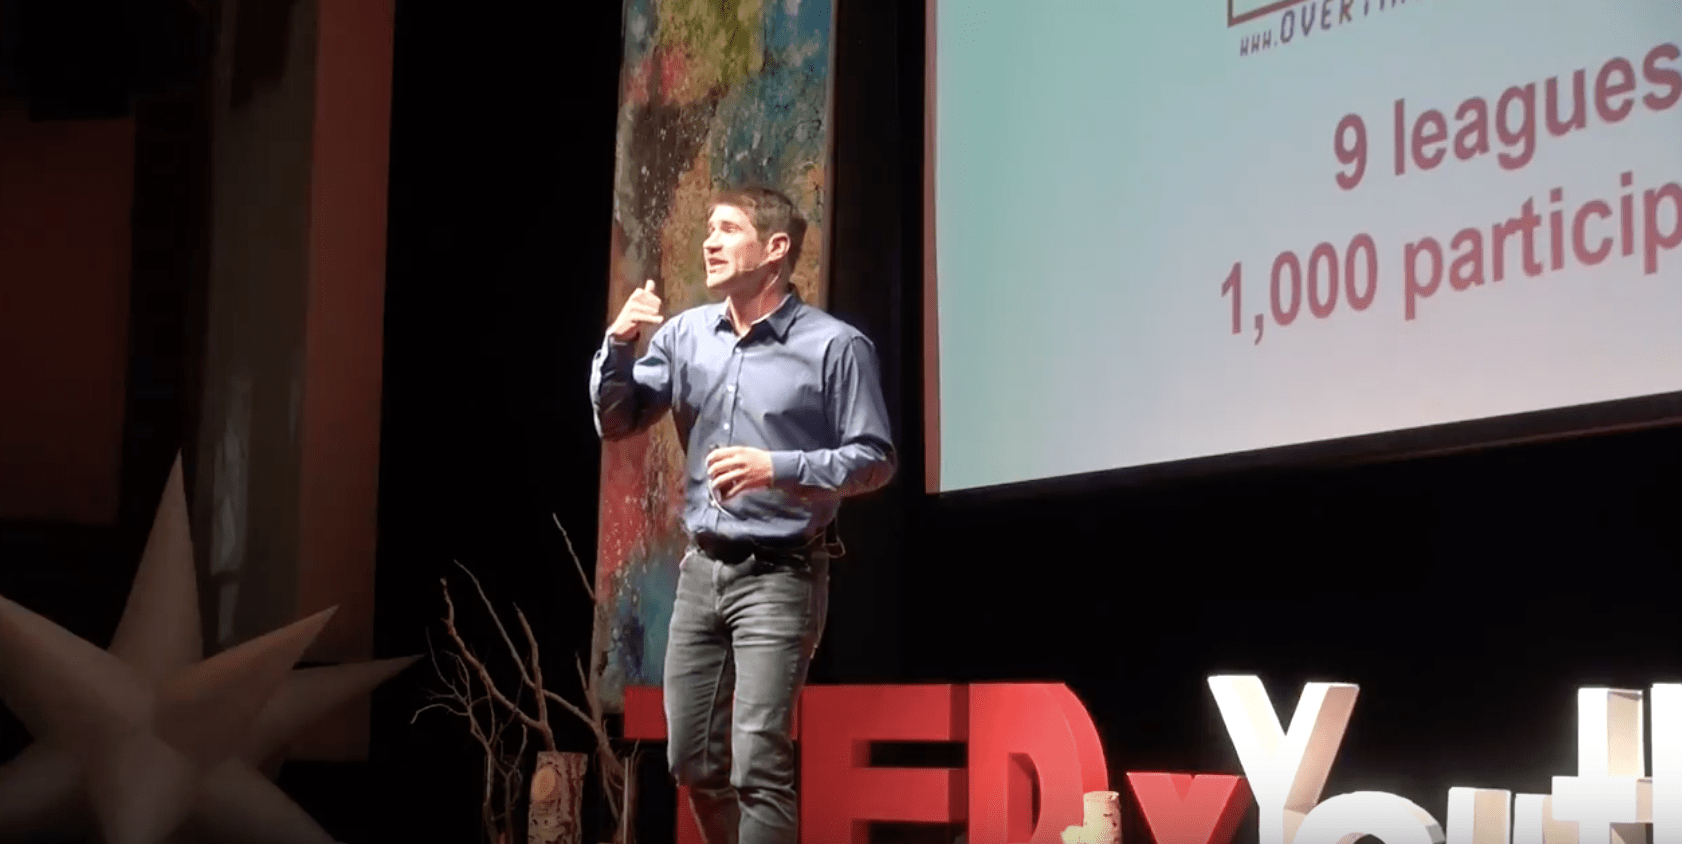 When facing addiction, get back up | Paul Churchill